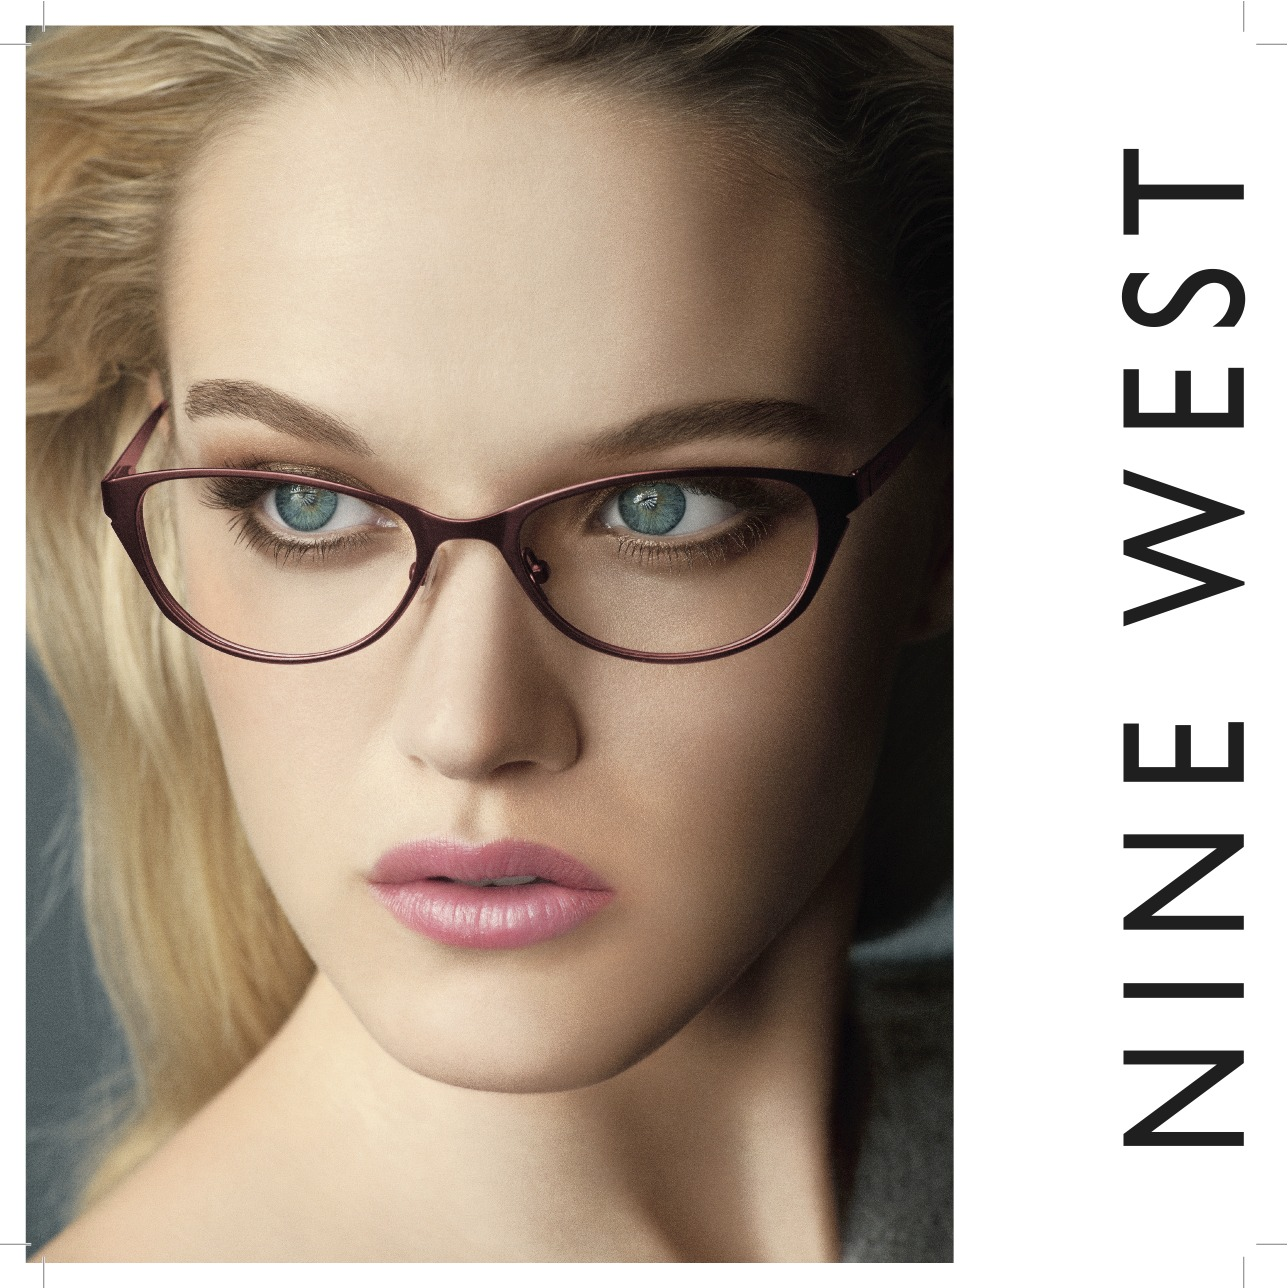 17b8eba39db Eyewear - Kennewick Vision Care